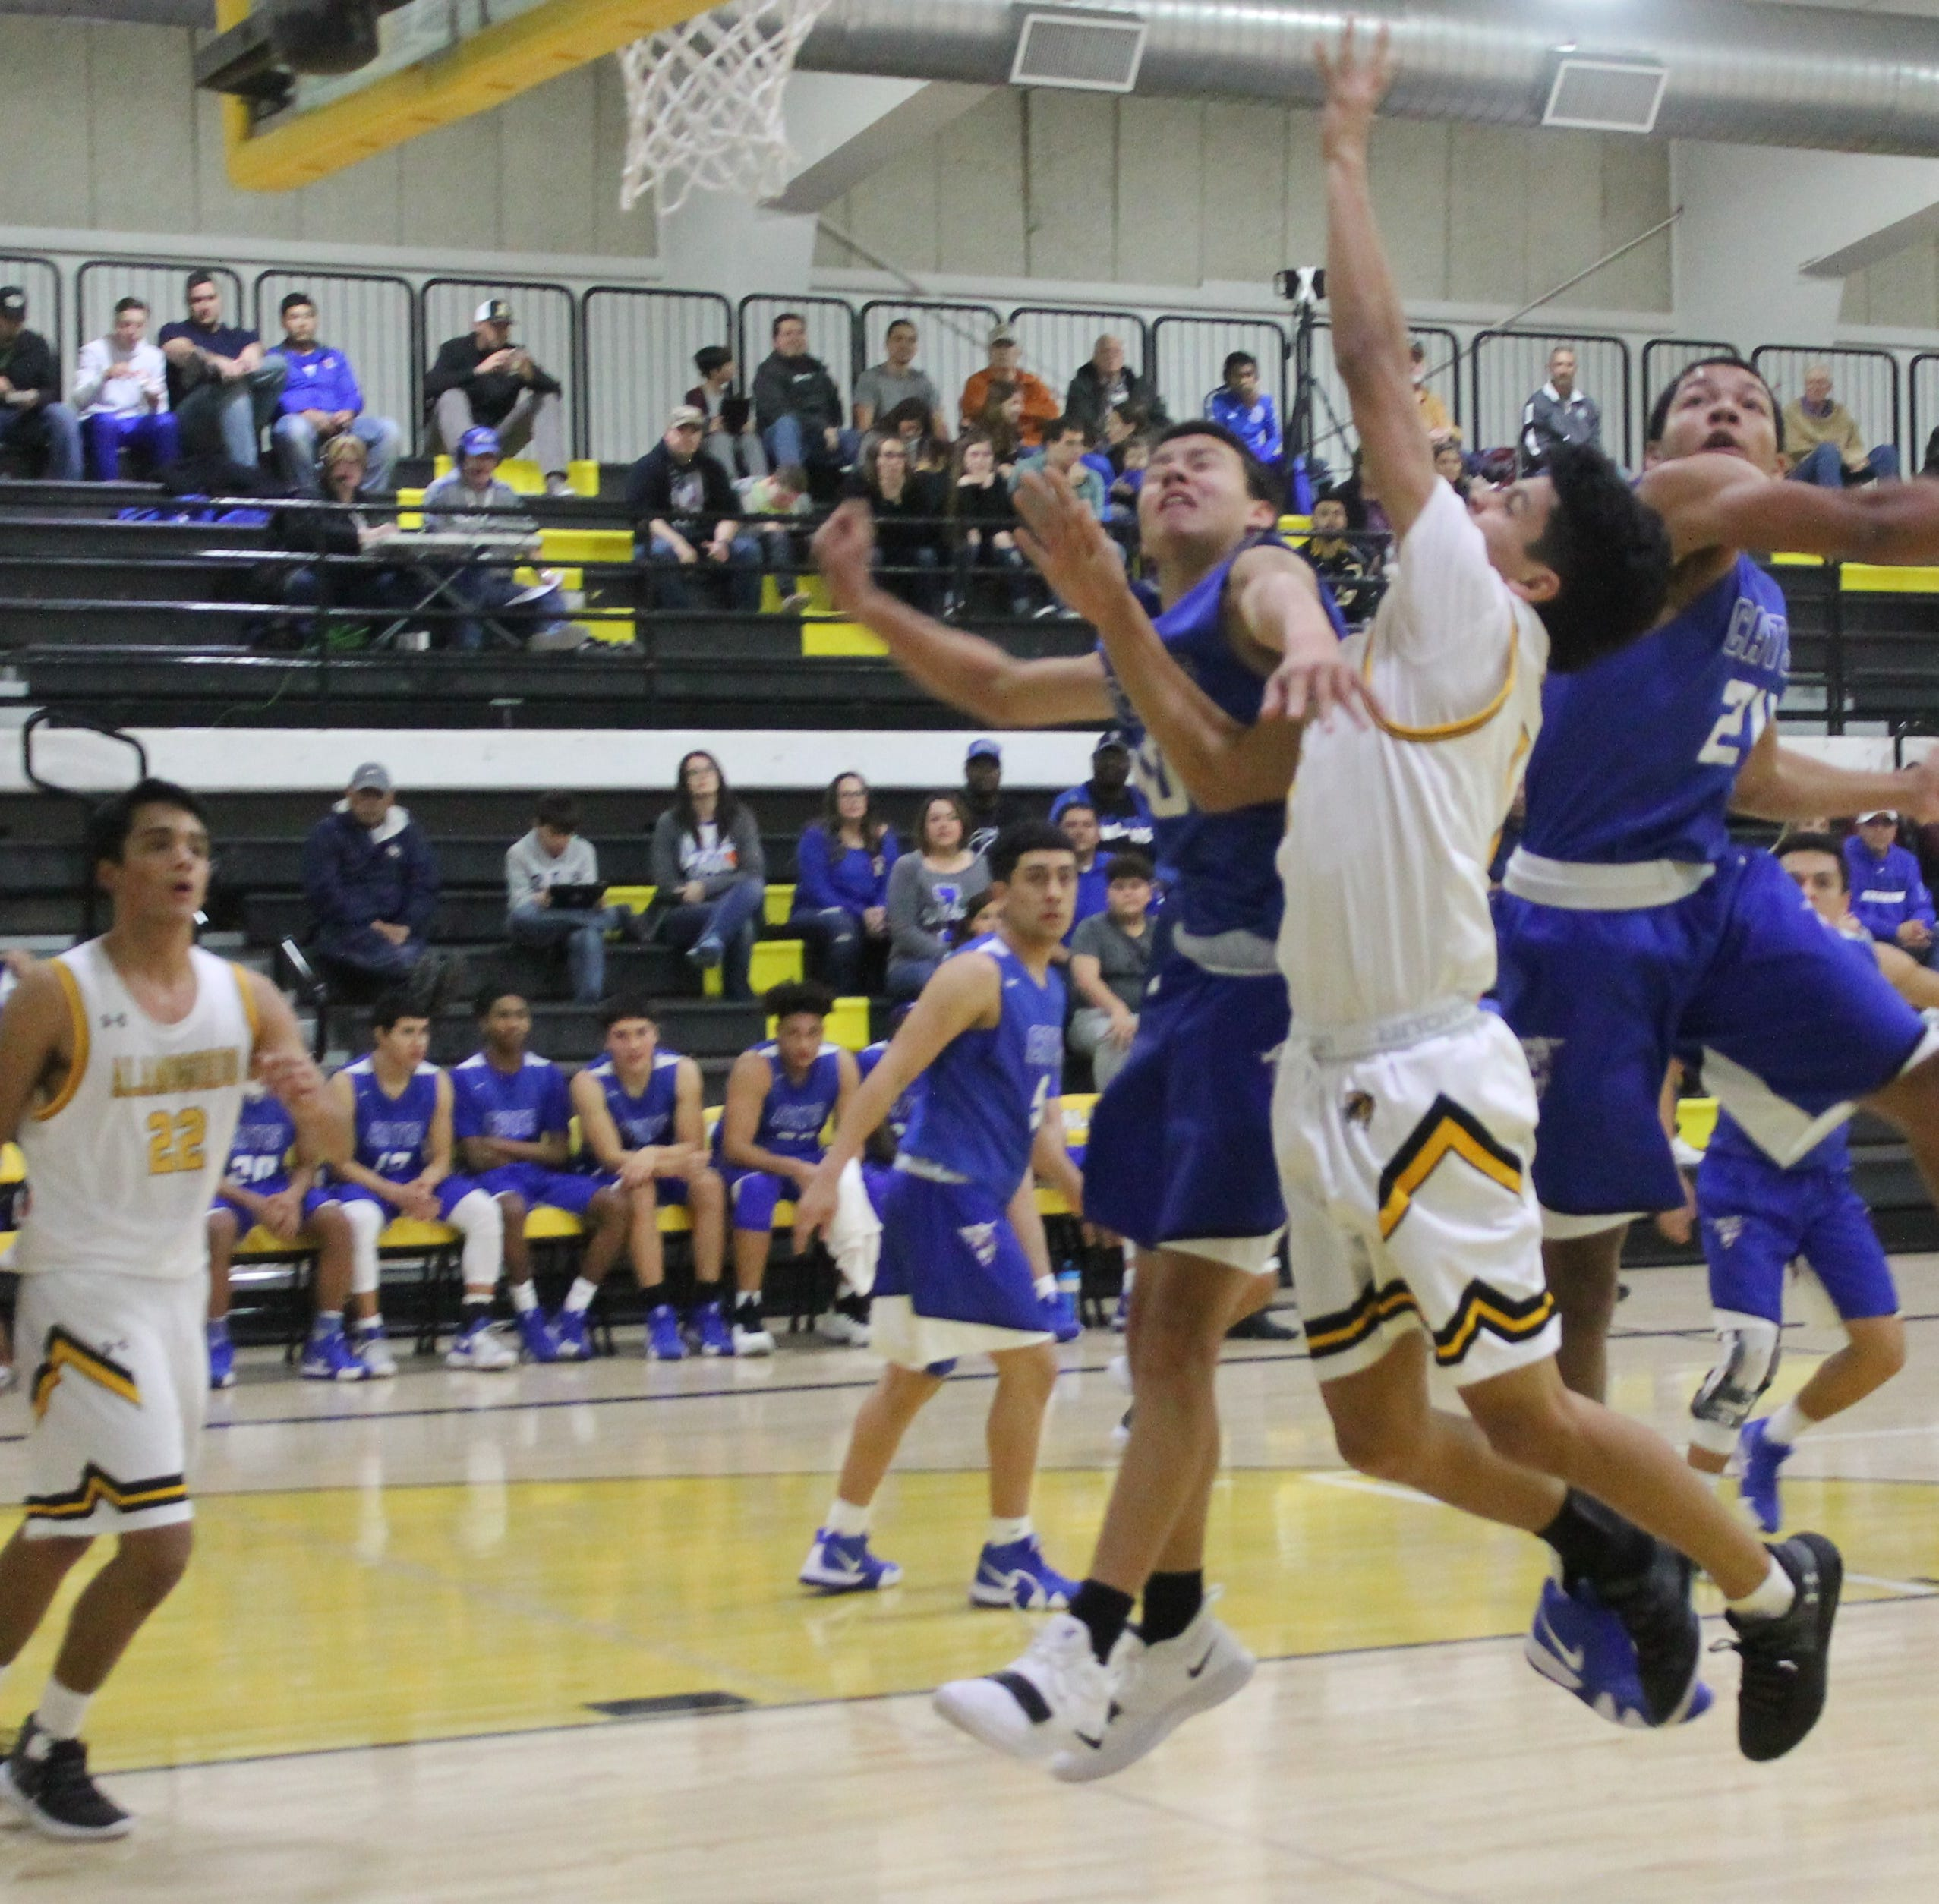 Alamogordo loses 63-47 in a rough 'n' tumble game against Lovington